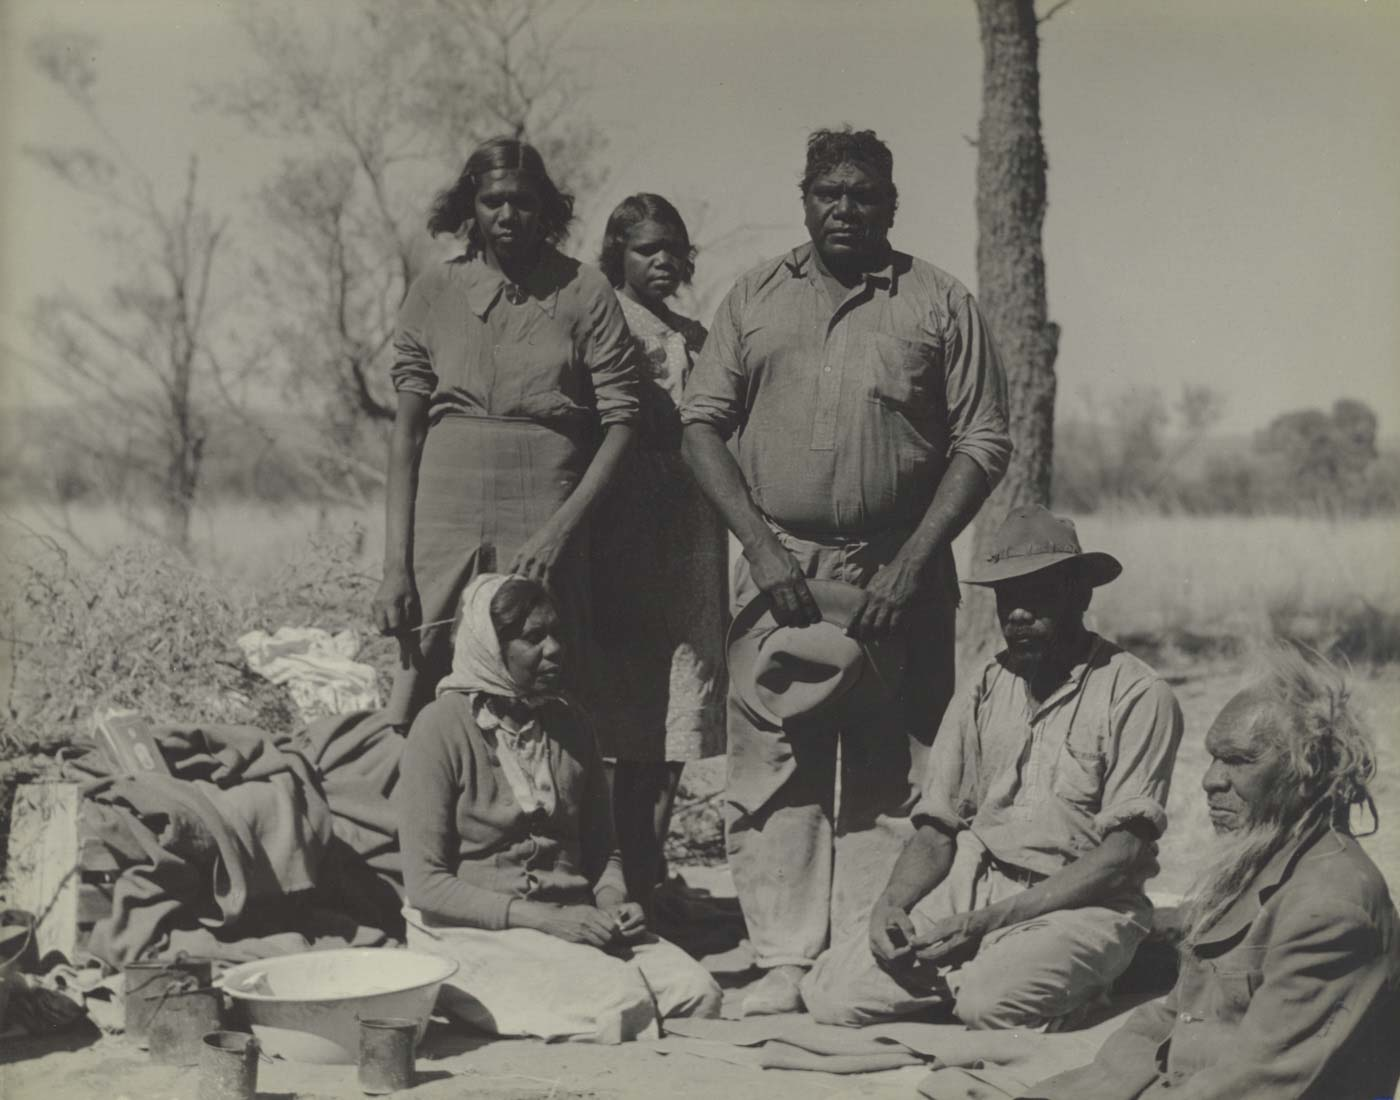 Black and white photo of a group of people sitting and standing in bush land. There are various items around them including tin cans, a basin and blankets.